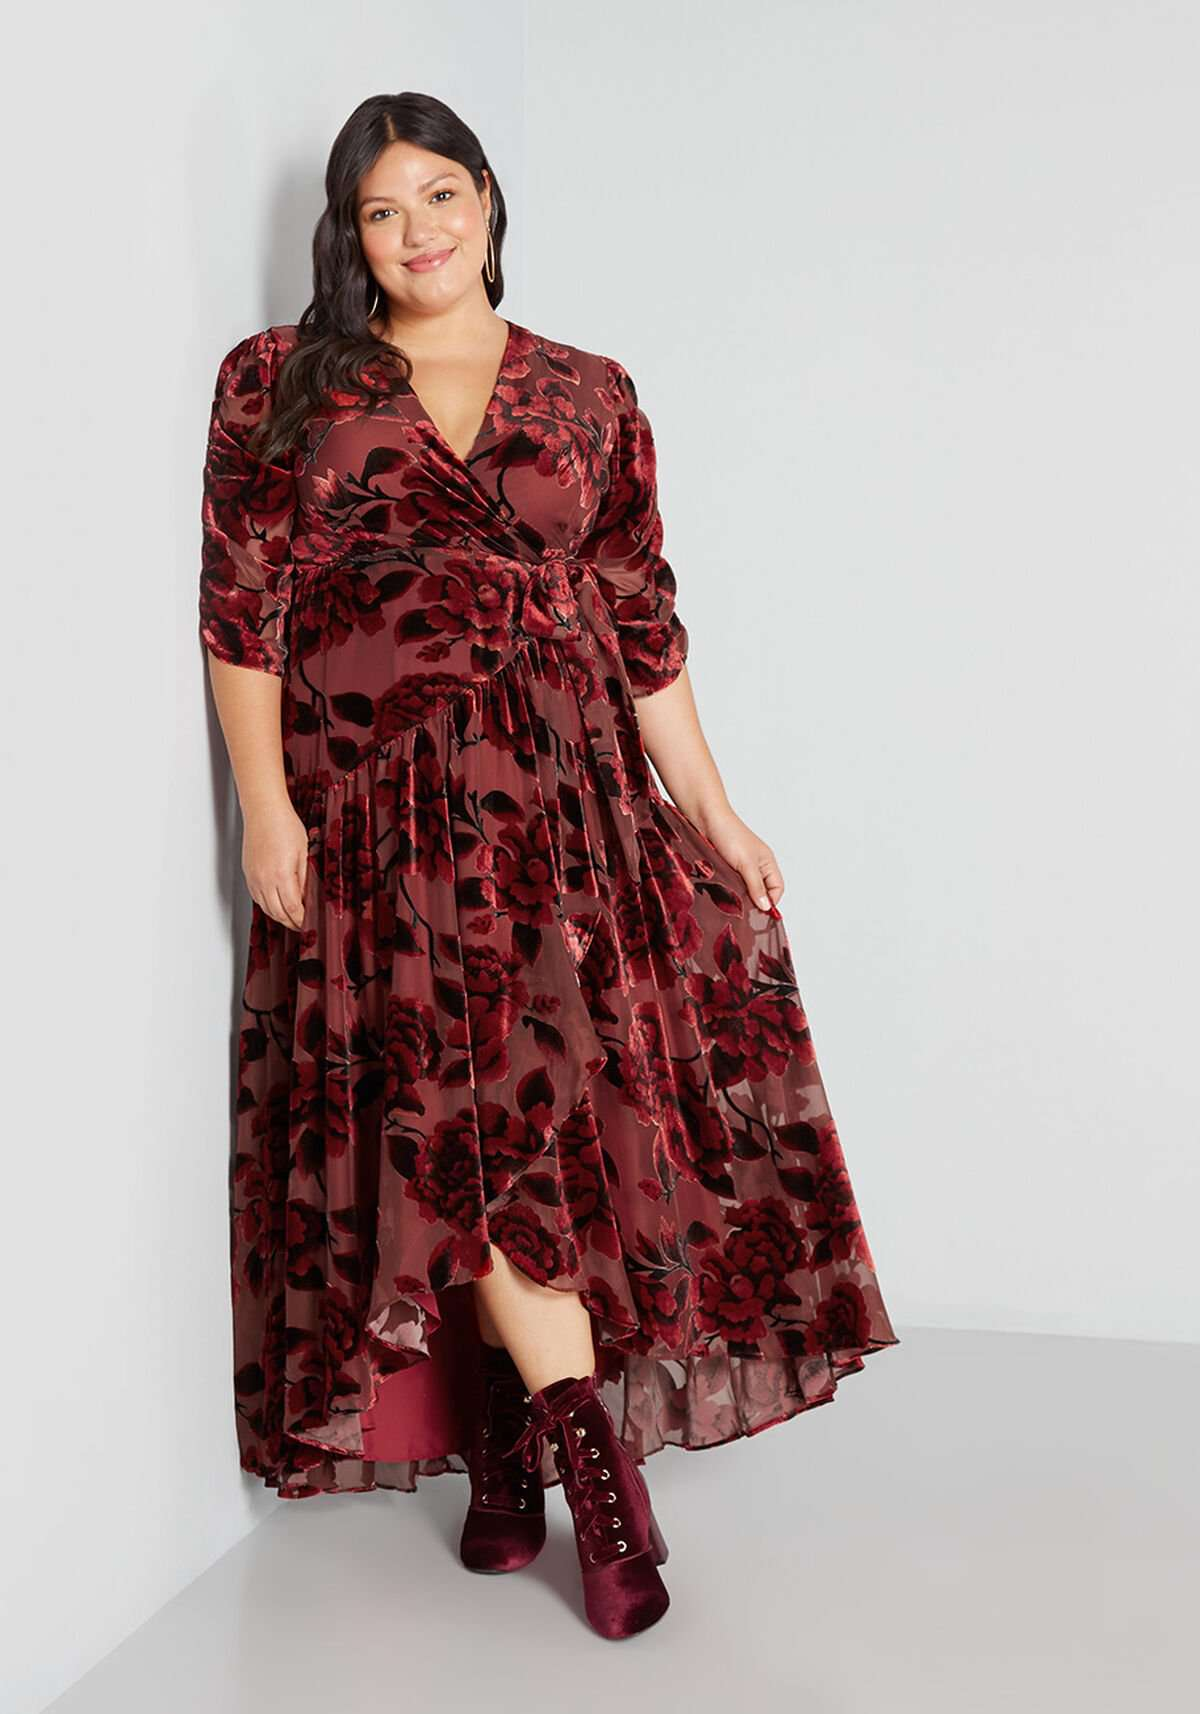 Hutch Tickets For Two Velvet Maxi Dress, $199